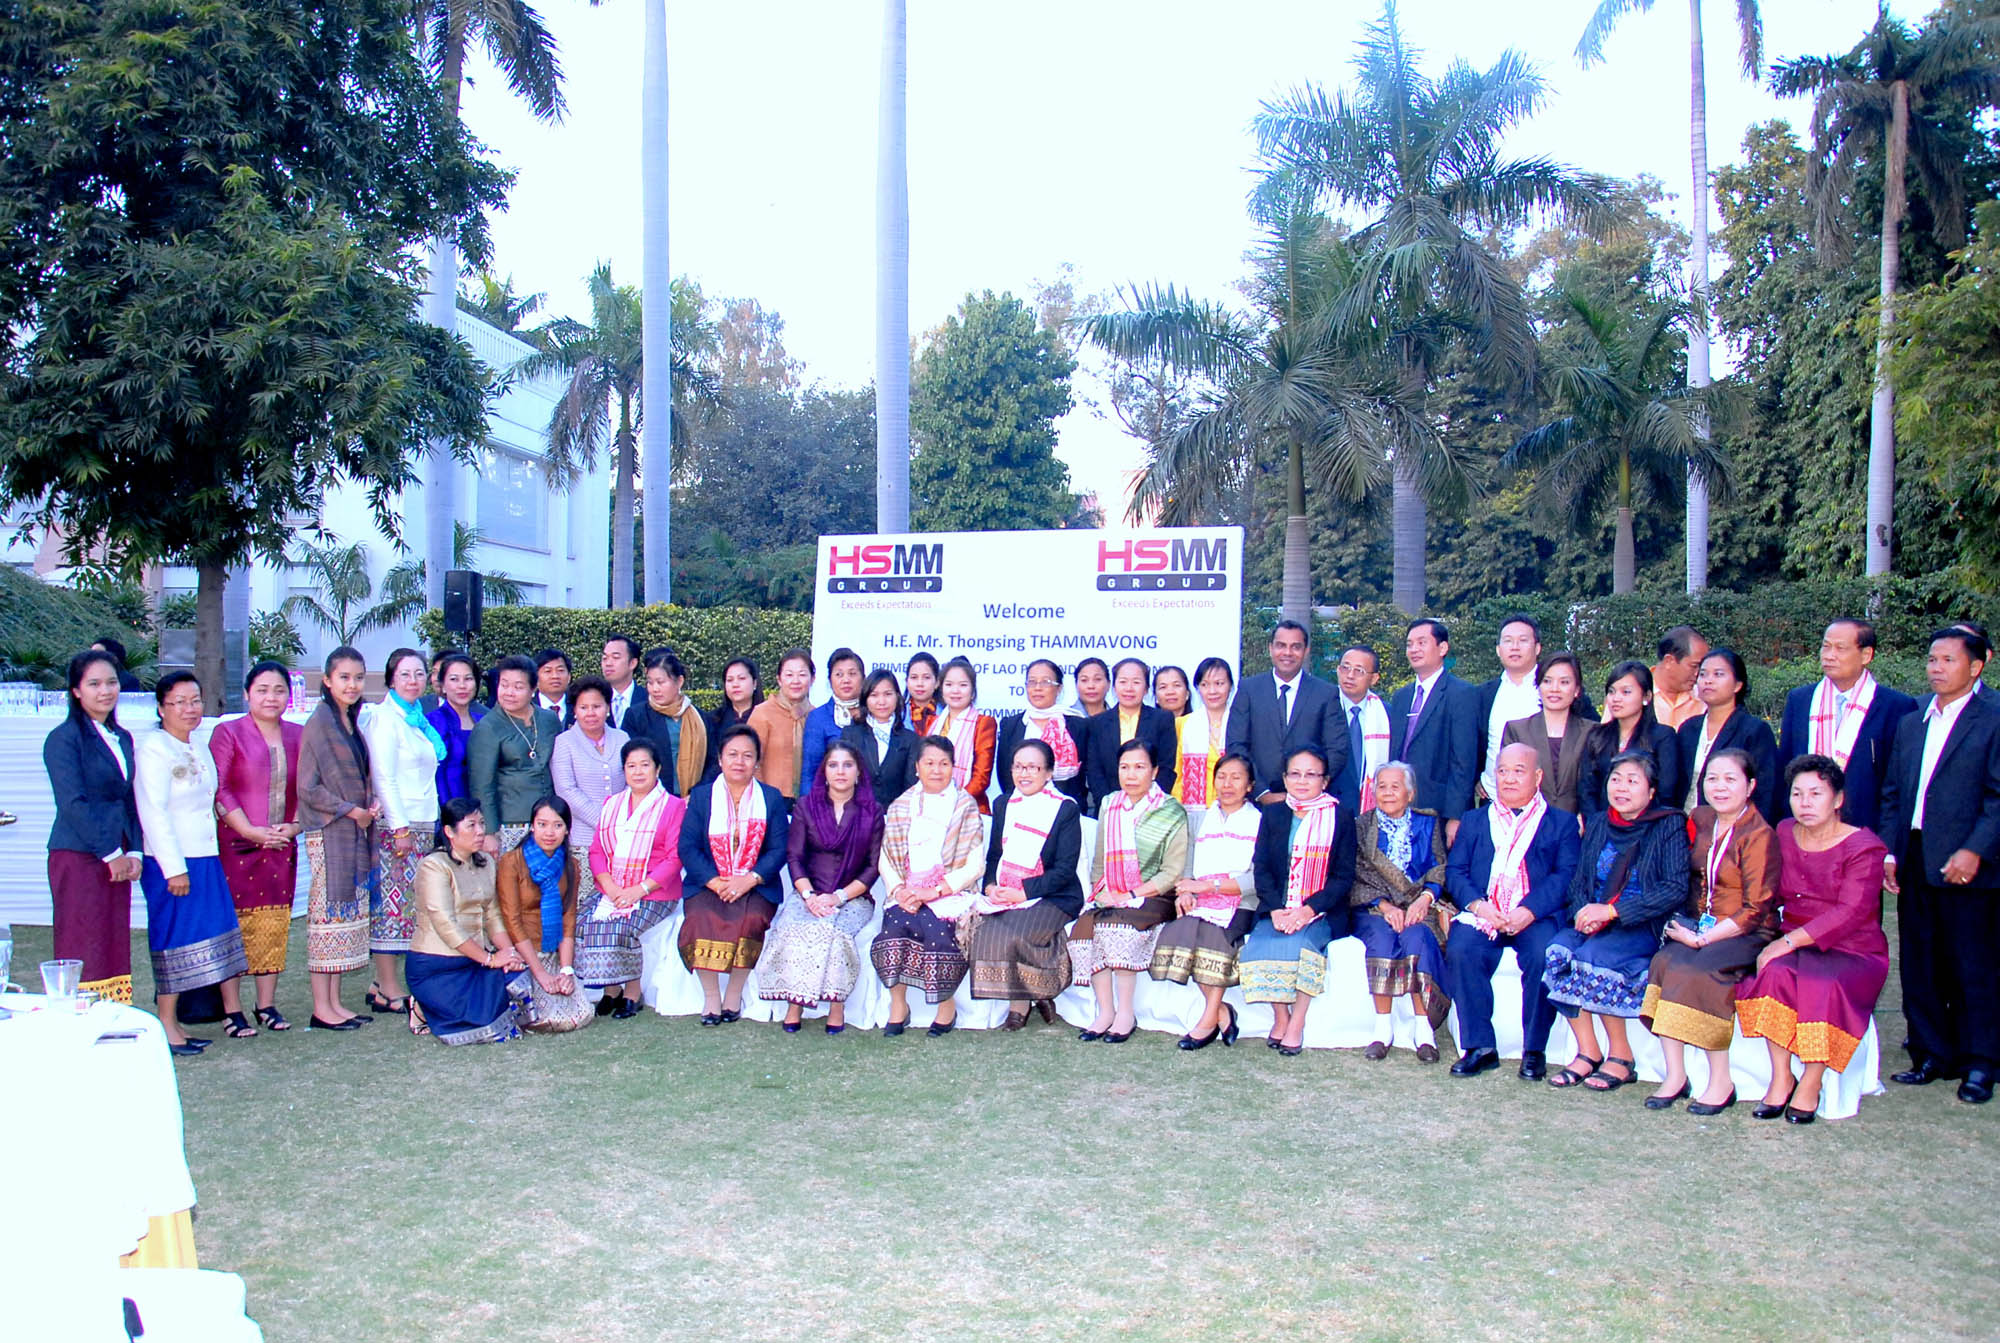 Welcome H.E. Mr. Thongsing THAMMAVONG, Prime Minister of Lao PDR and delegations to ASEAN-INDIA Commemorative Summit 20th-21st December 2012, New Delhi, buffet lunch